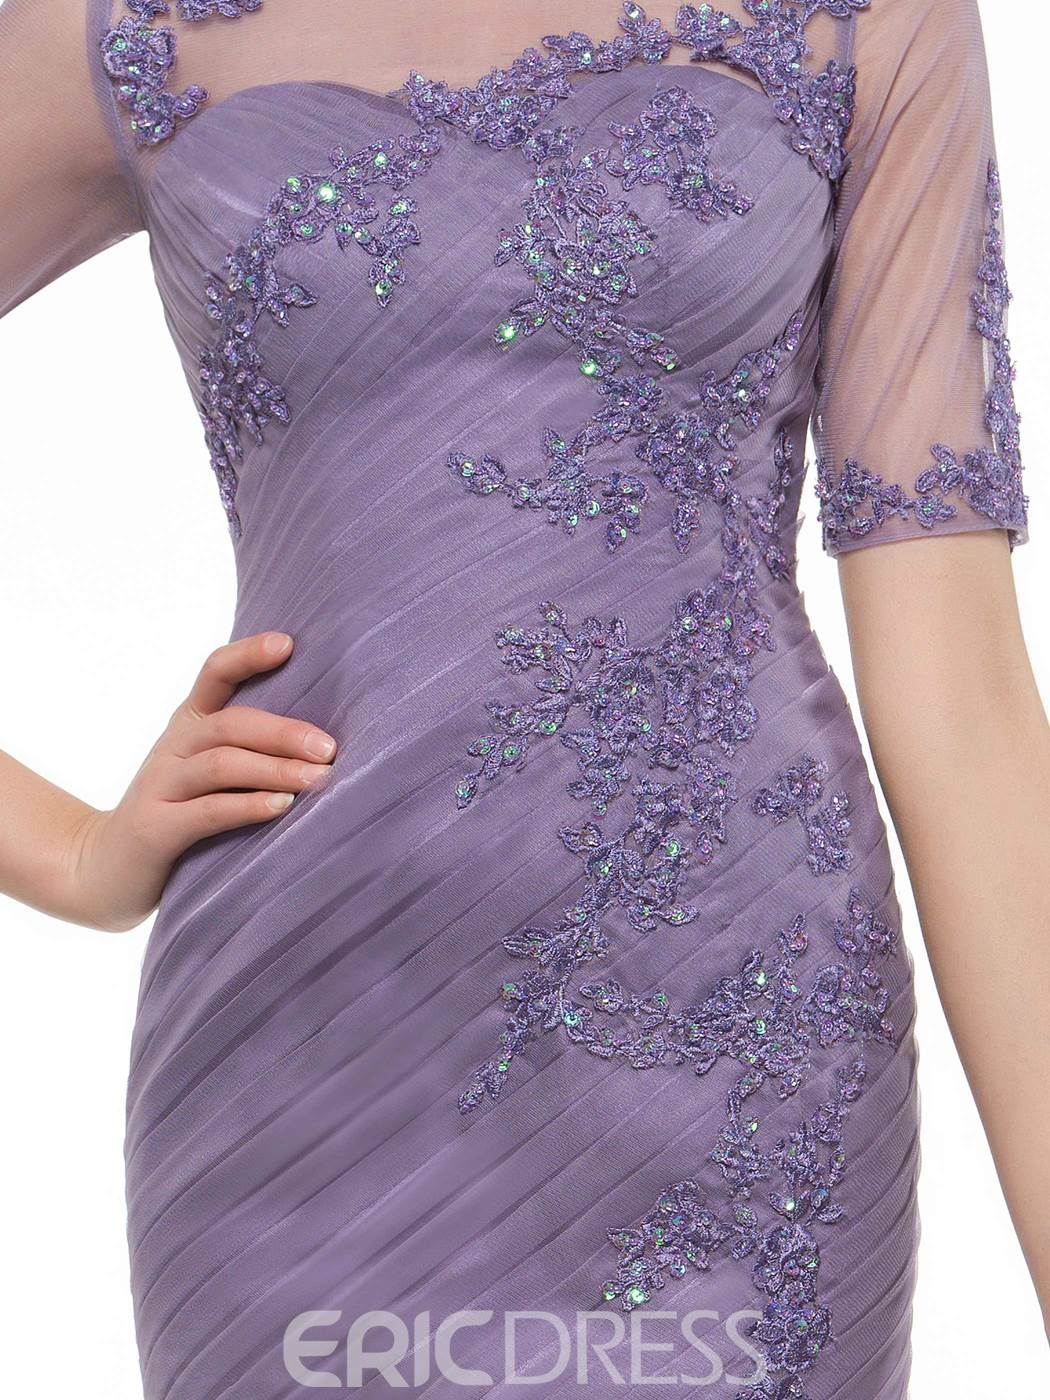 Ericdress Charming Appliques Short Mother Of The Bride Dress